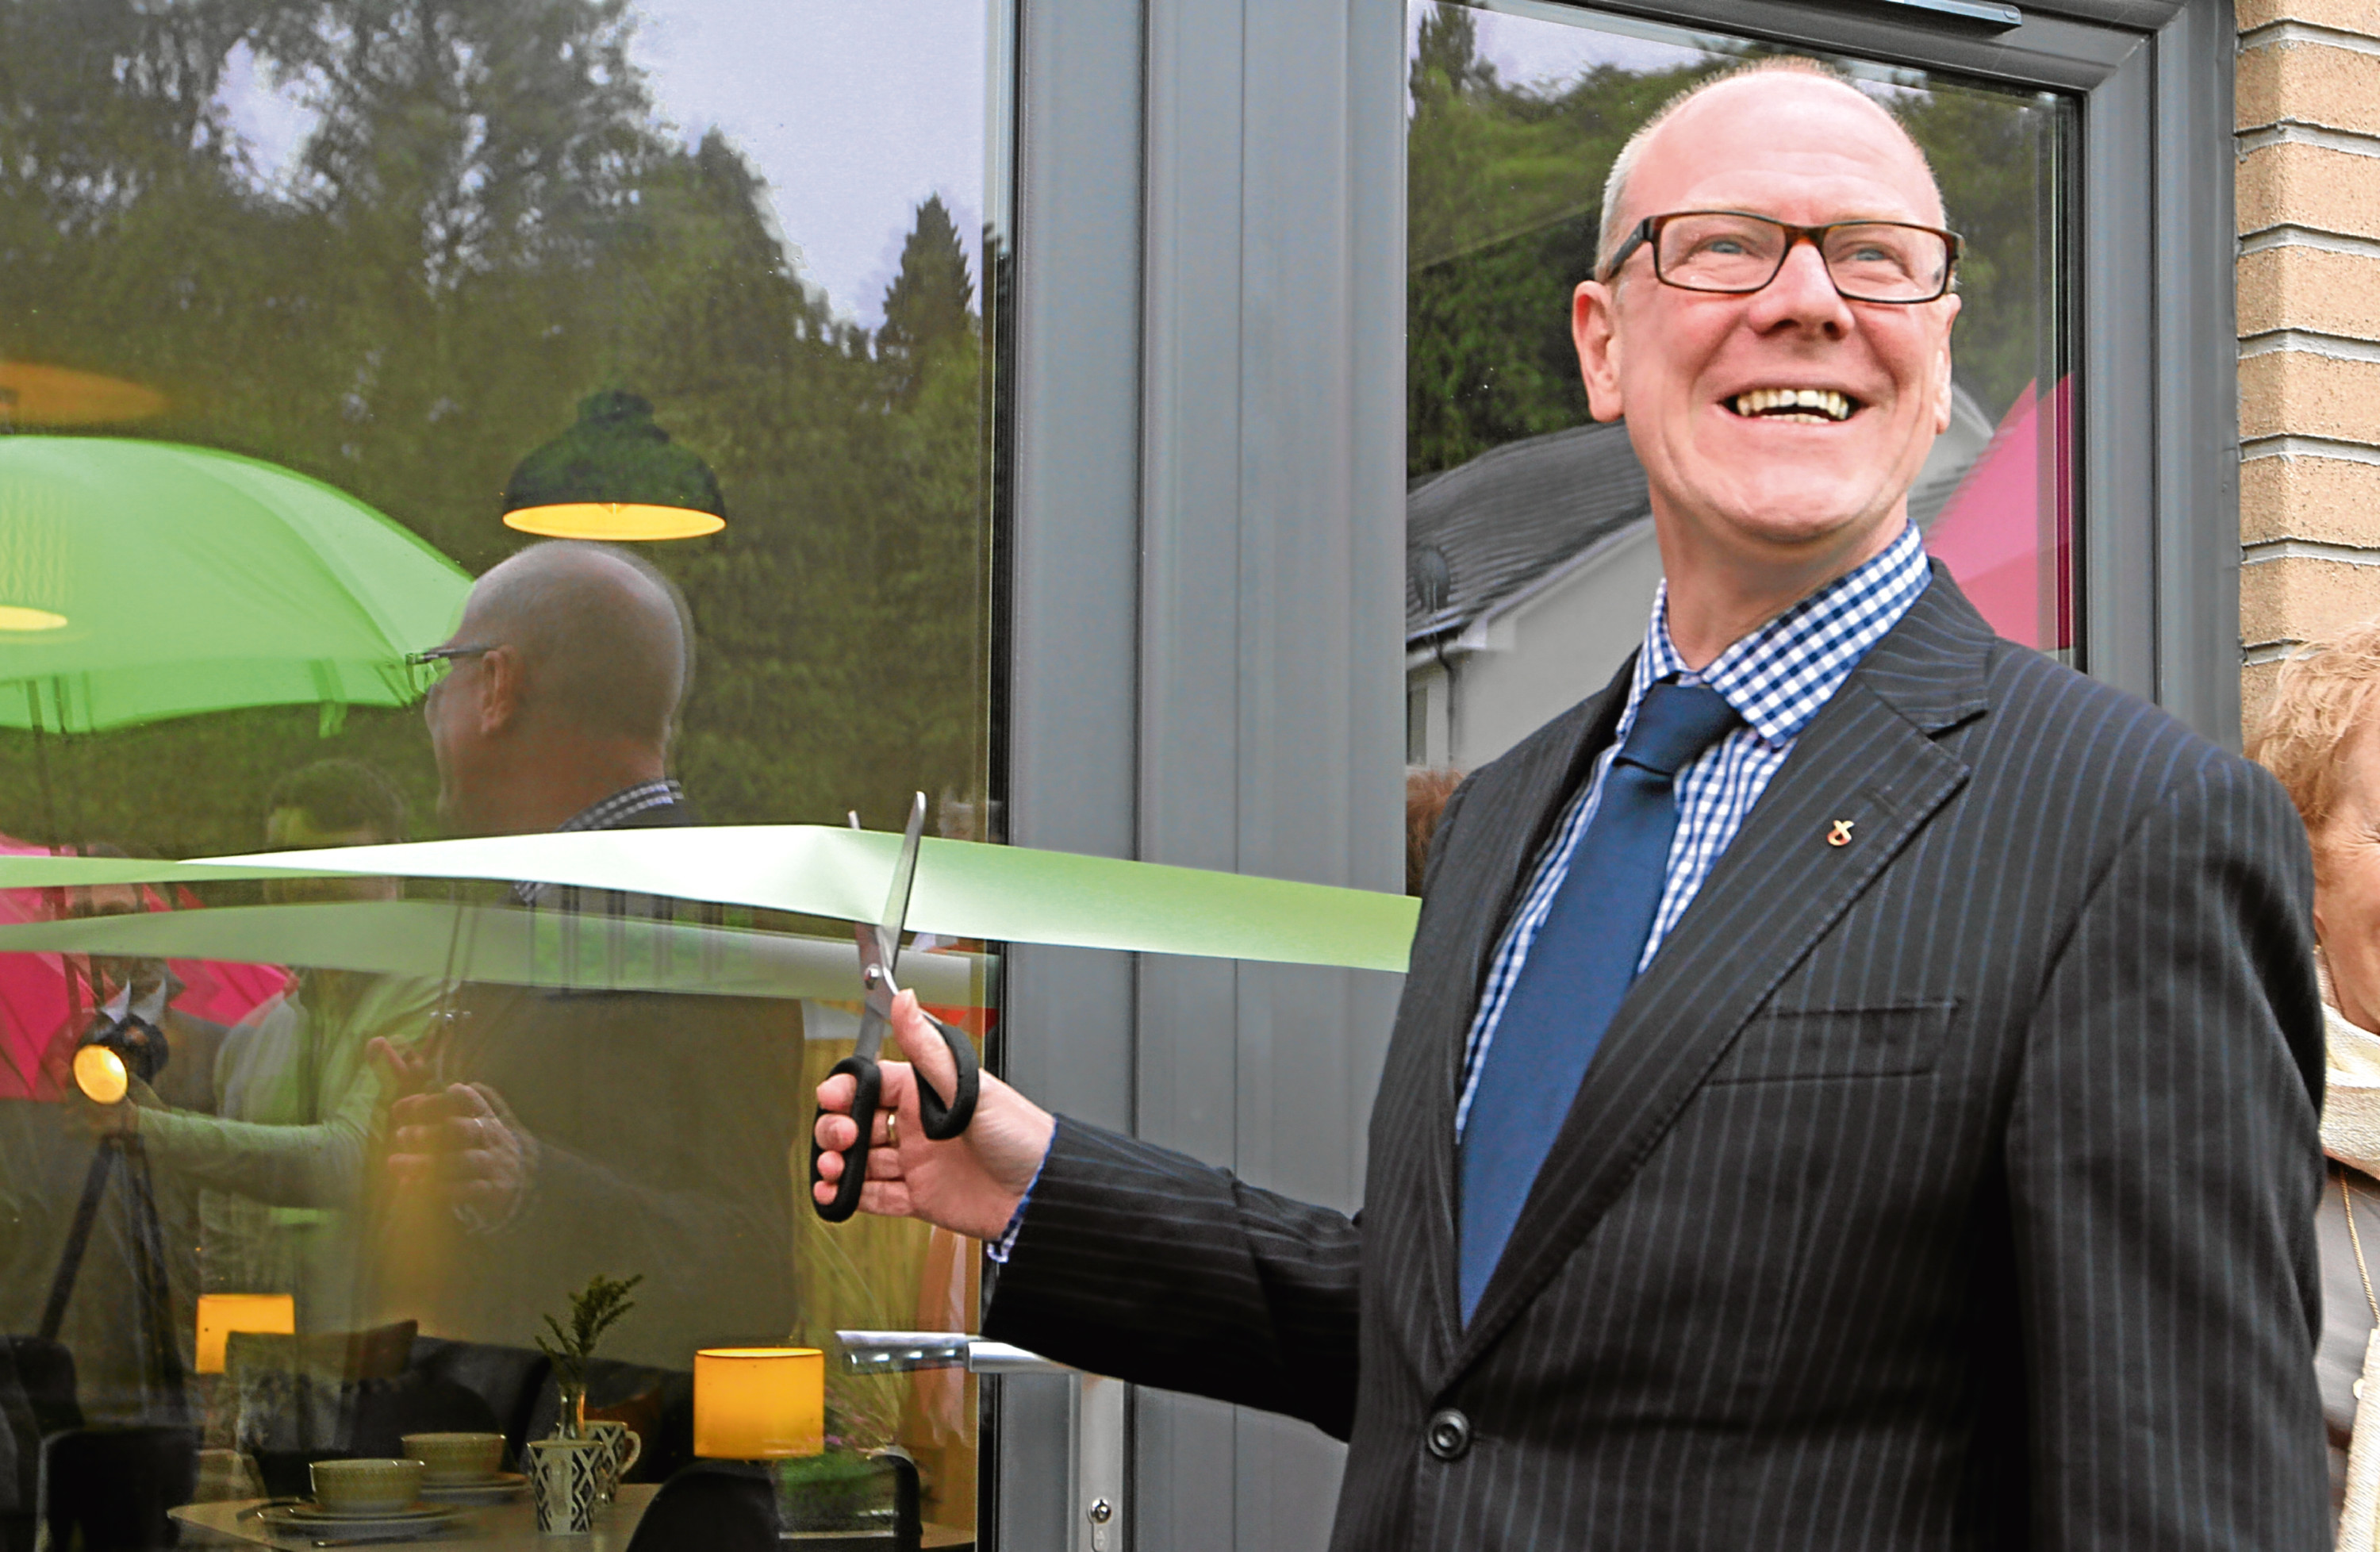 Minister of Local Government and Housing, Kevin Stewart, visited the newly developed homes